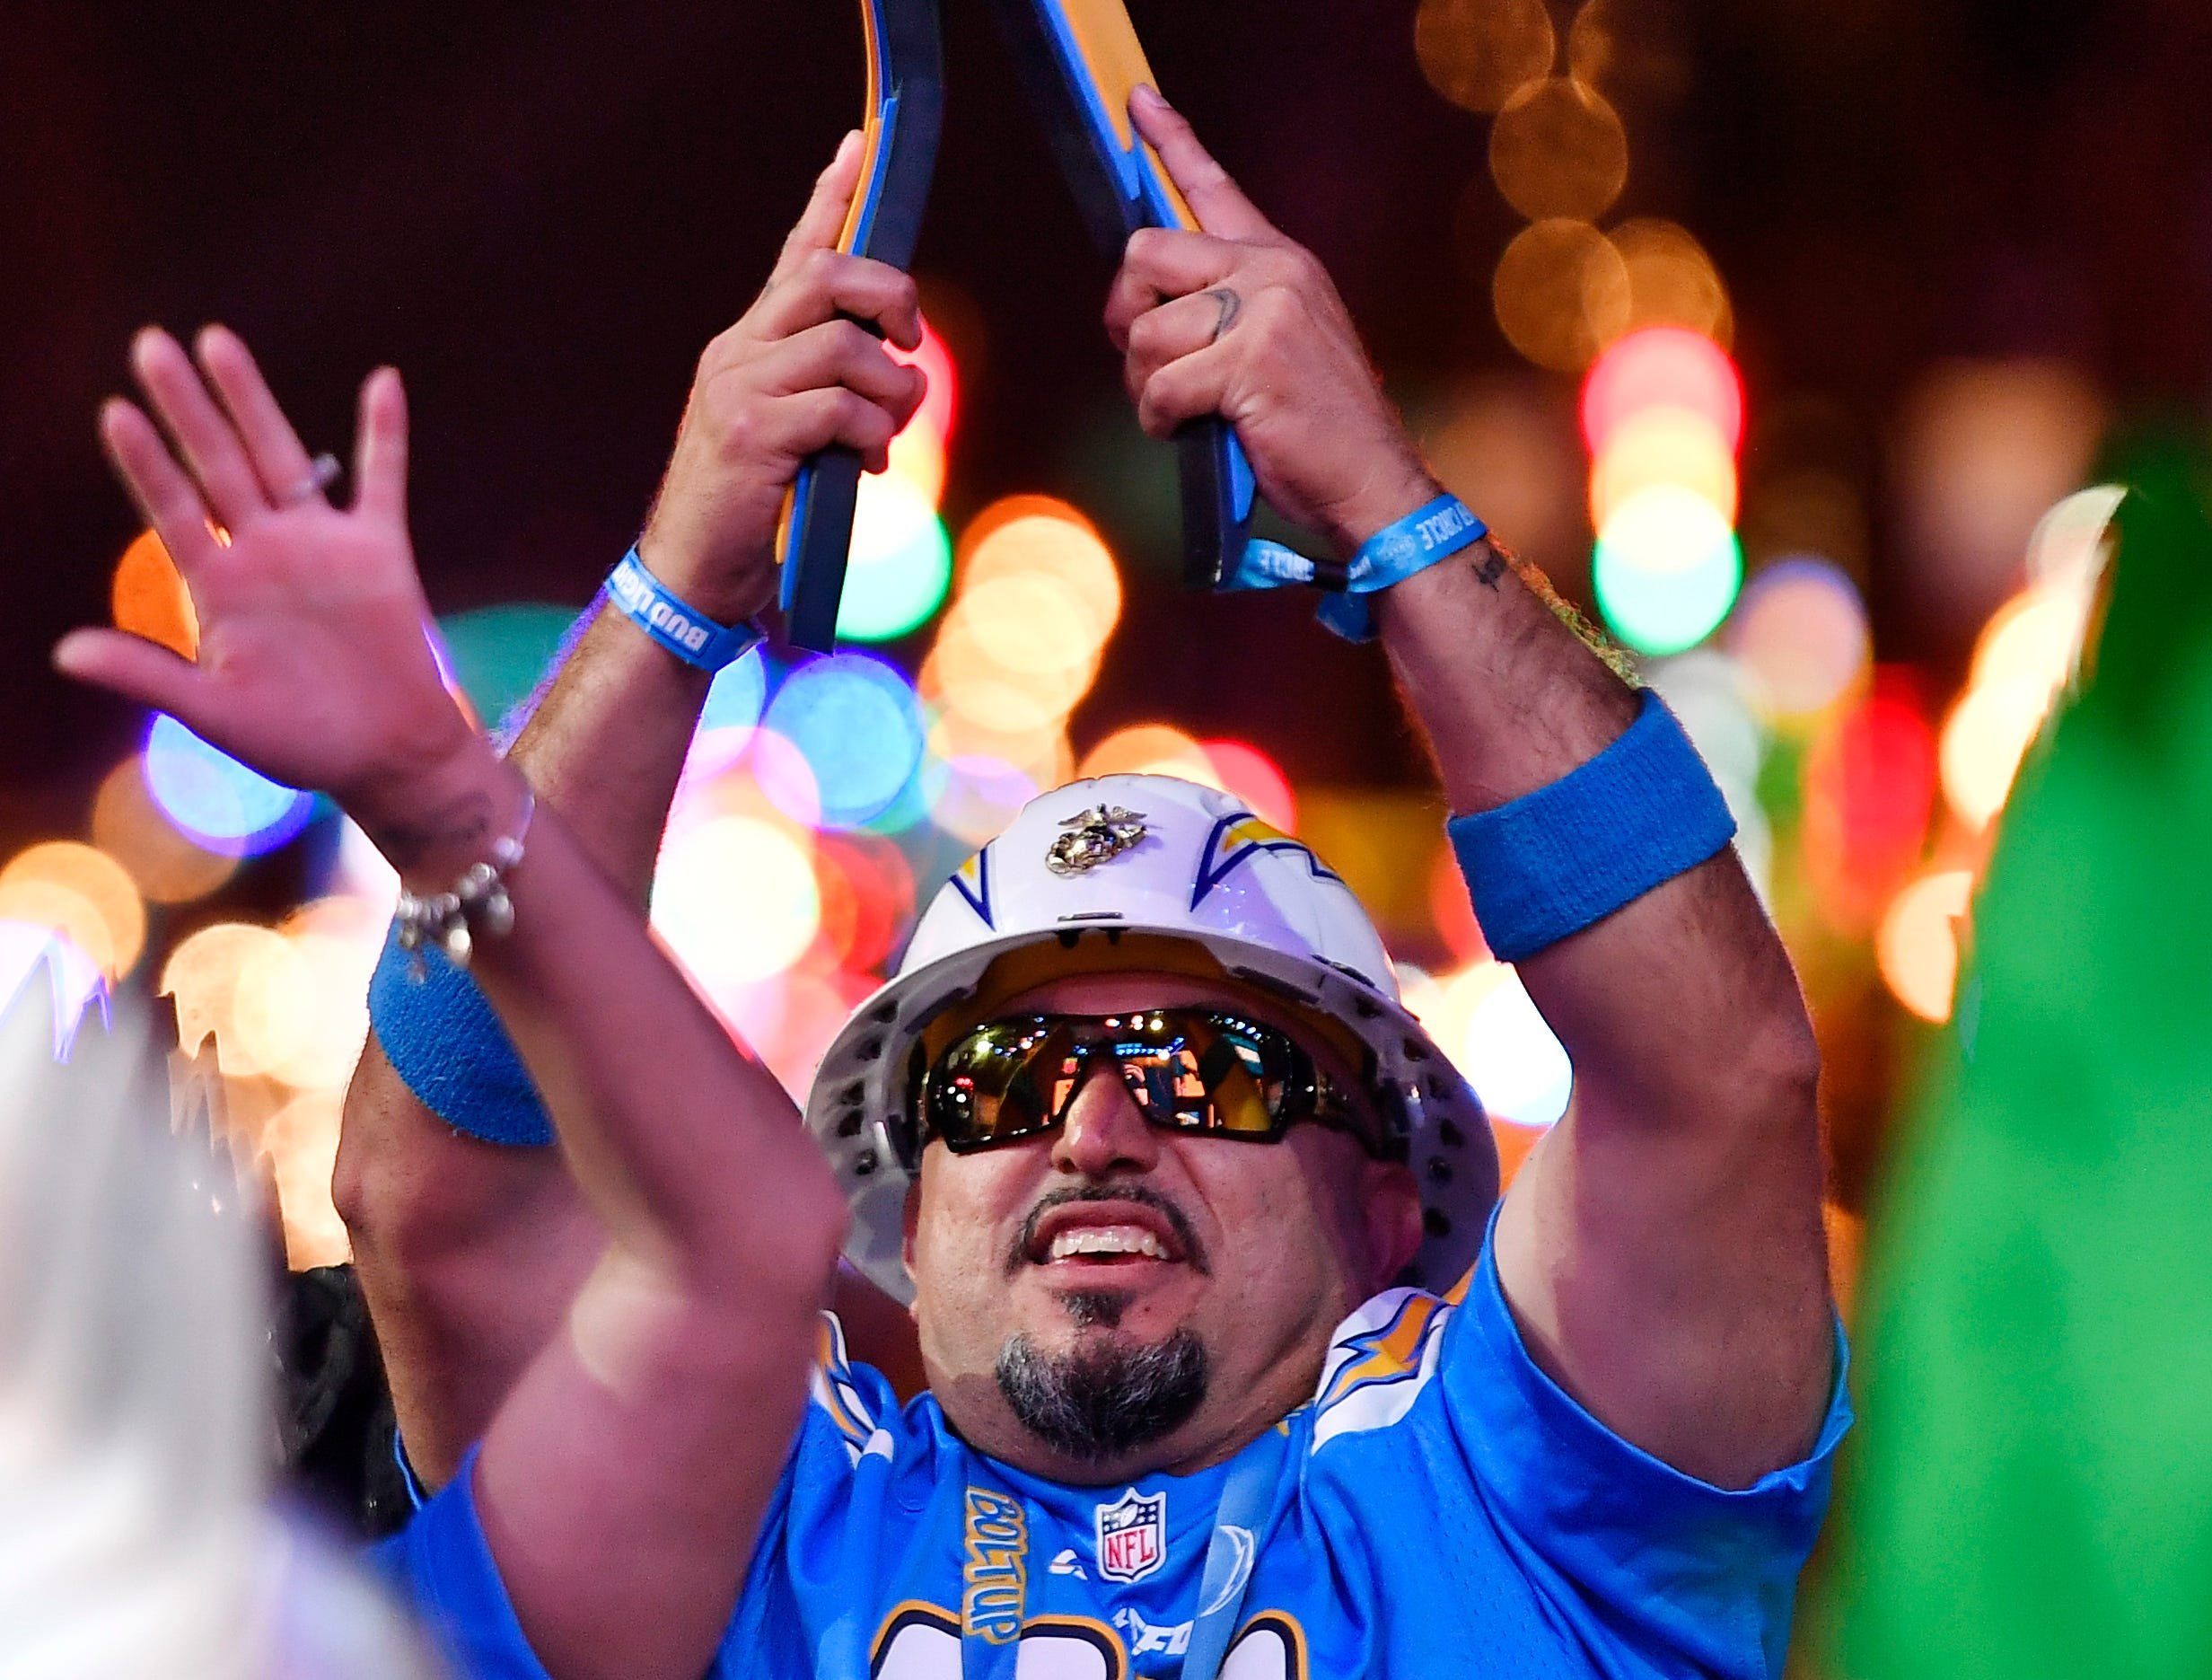 An Los Angeles Chargers fan cheers during the first round of the NFL Draft Thursday, April 25, 2019, in Nashville, Tenn.